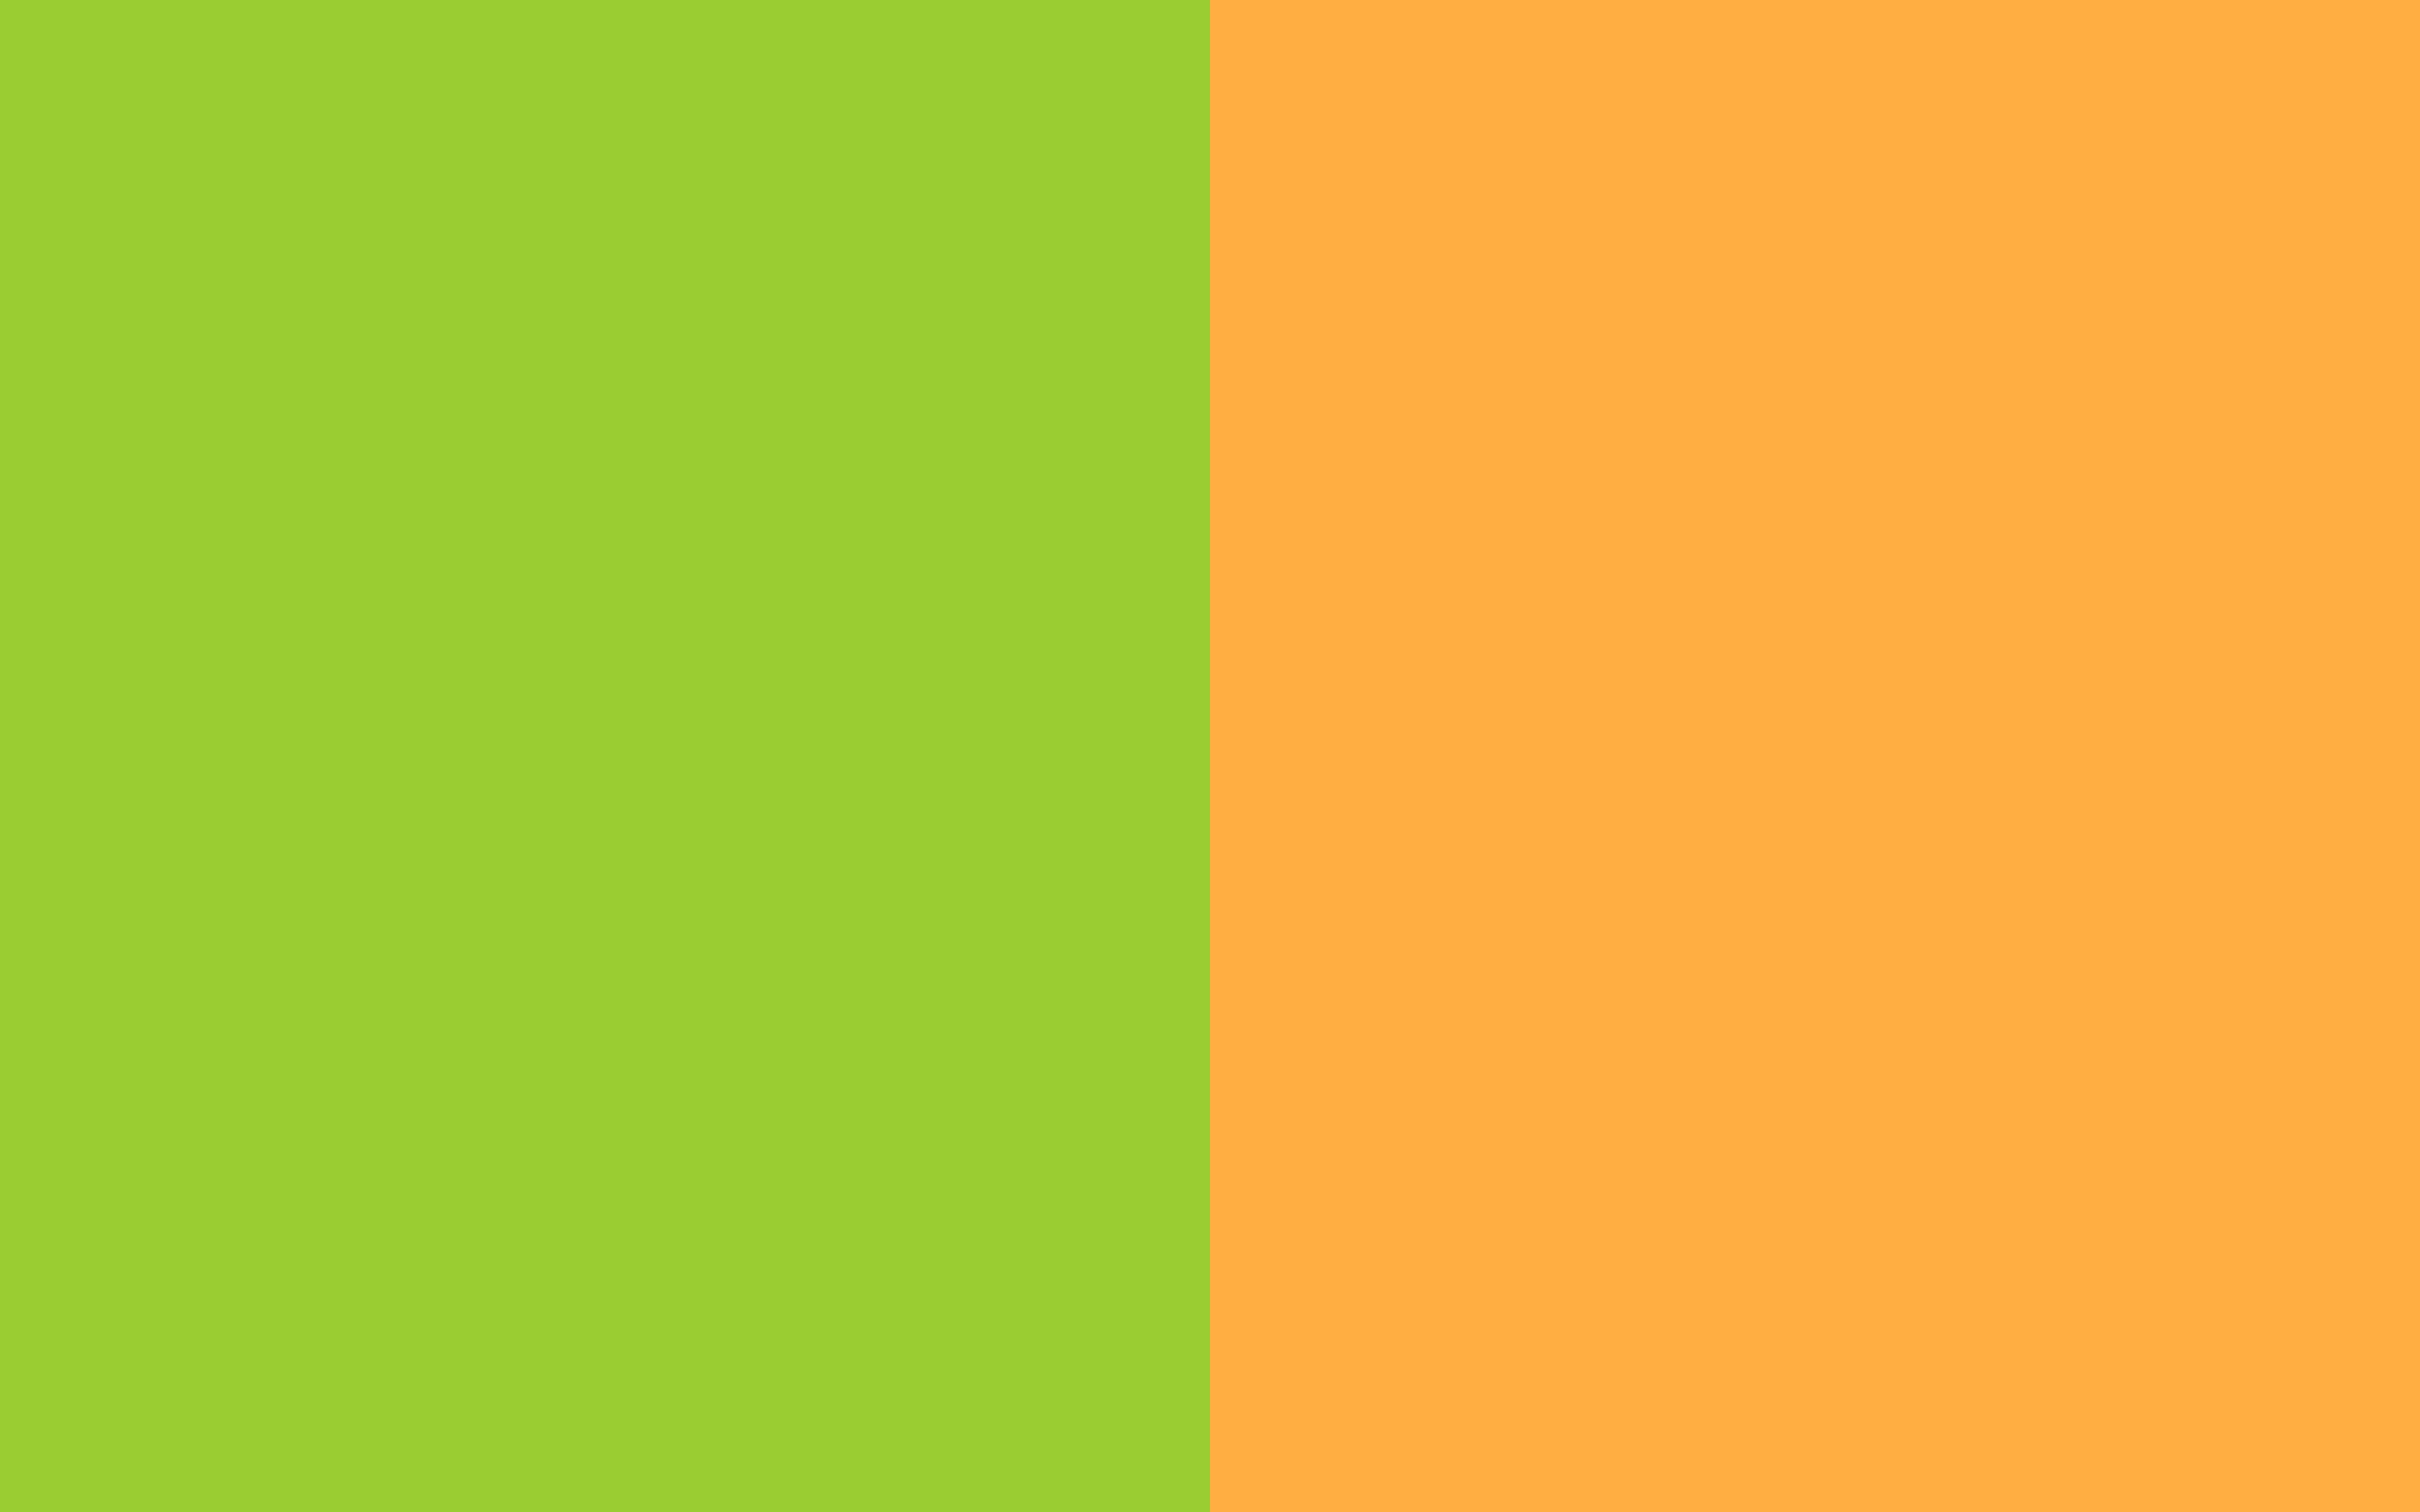 orange and green wallpaper